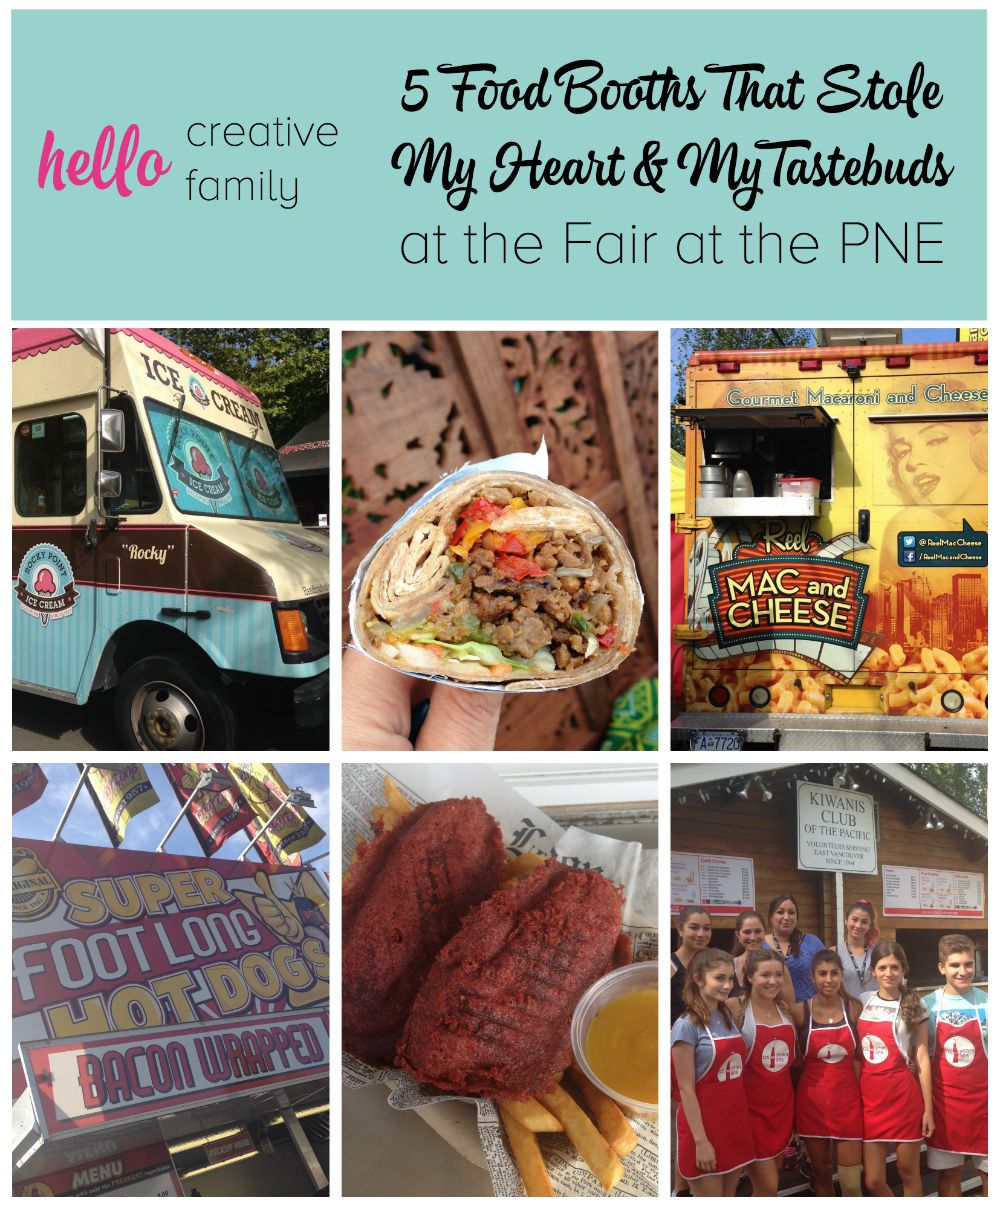 5 food booths that stole my heart and my tastebuds at the PNE